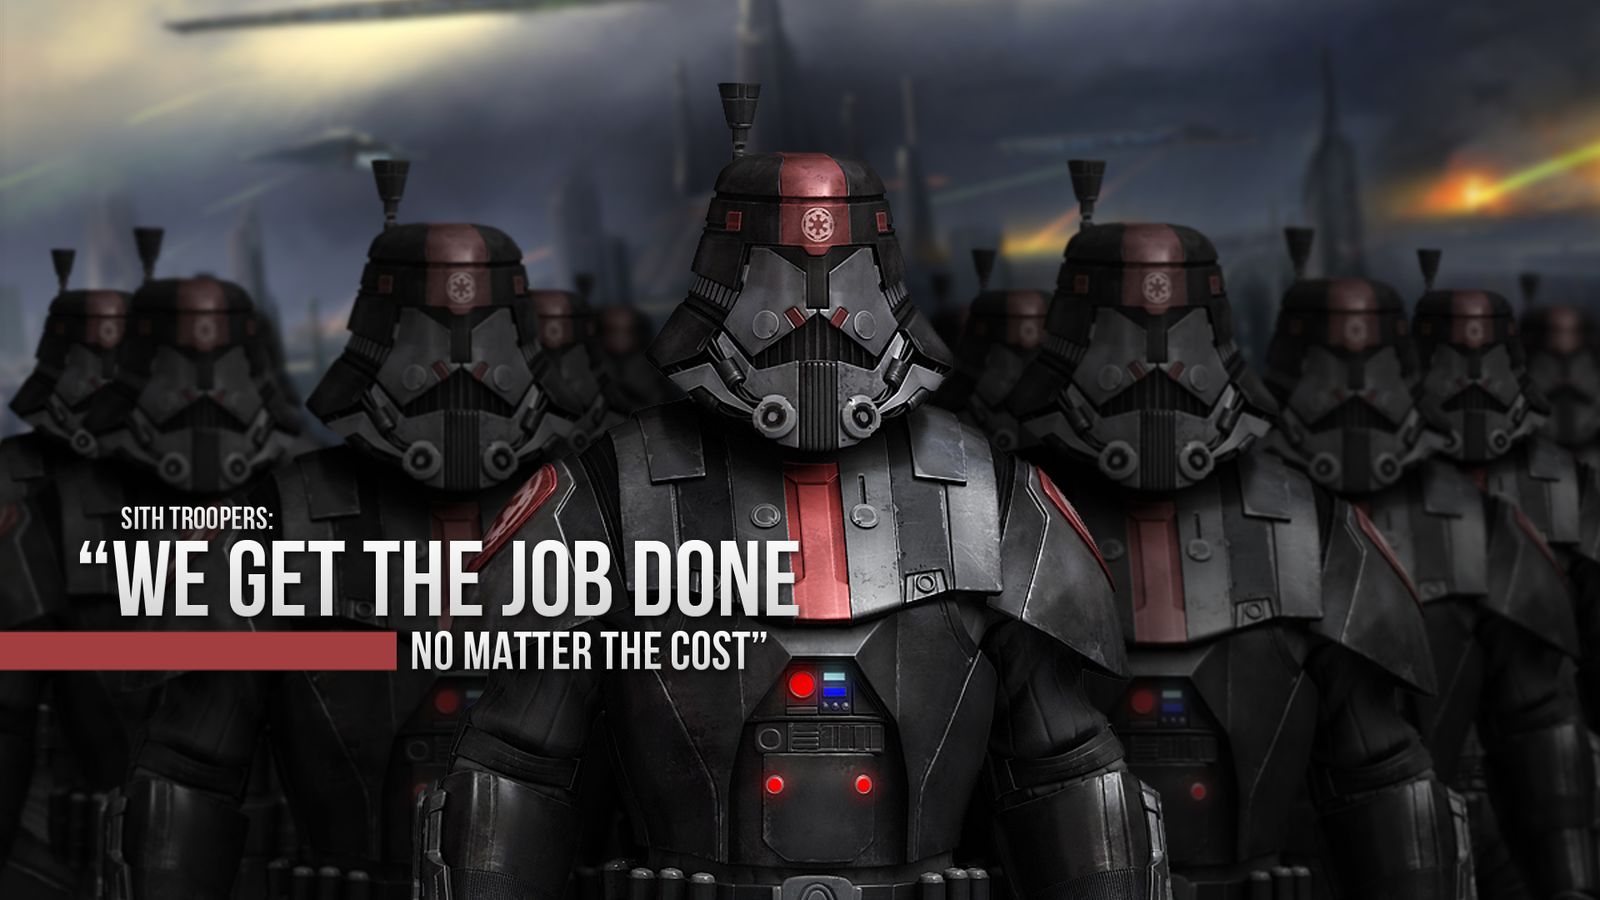 Sith Wallpaper 1080p Sith troopers 1080p by 1600x900